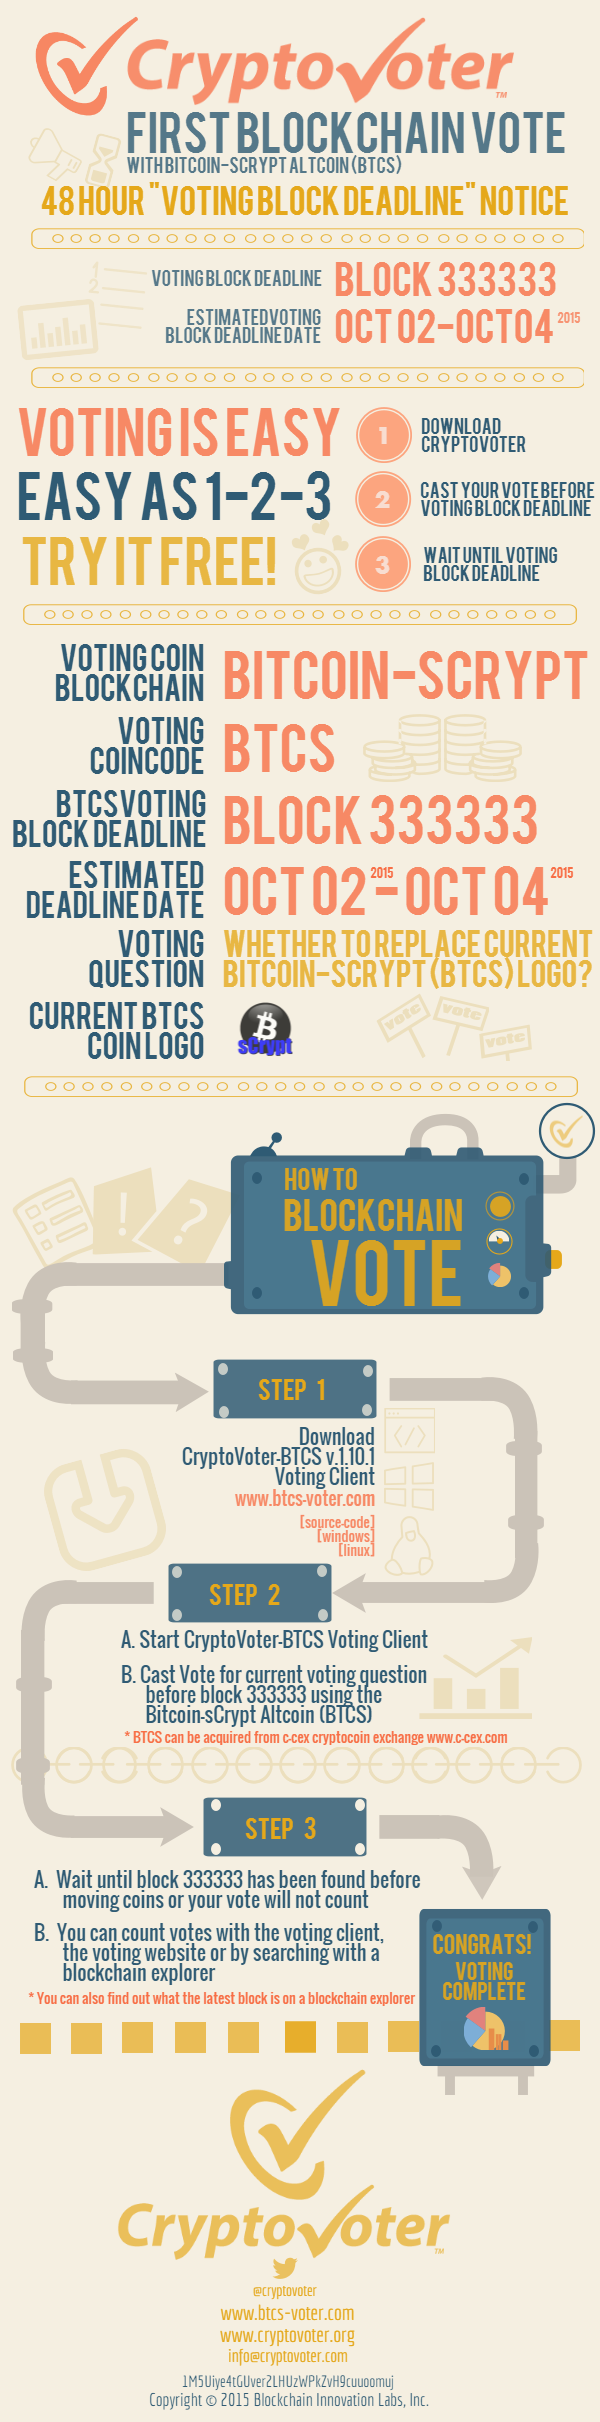 First Bitcoin-sCrypt Blockchain Vote – 48 Hour Voting Block Deadline Notice